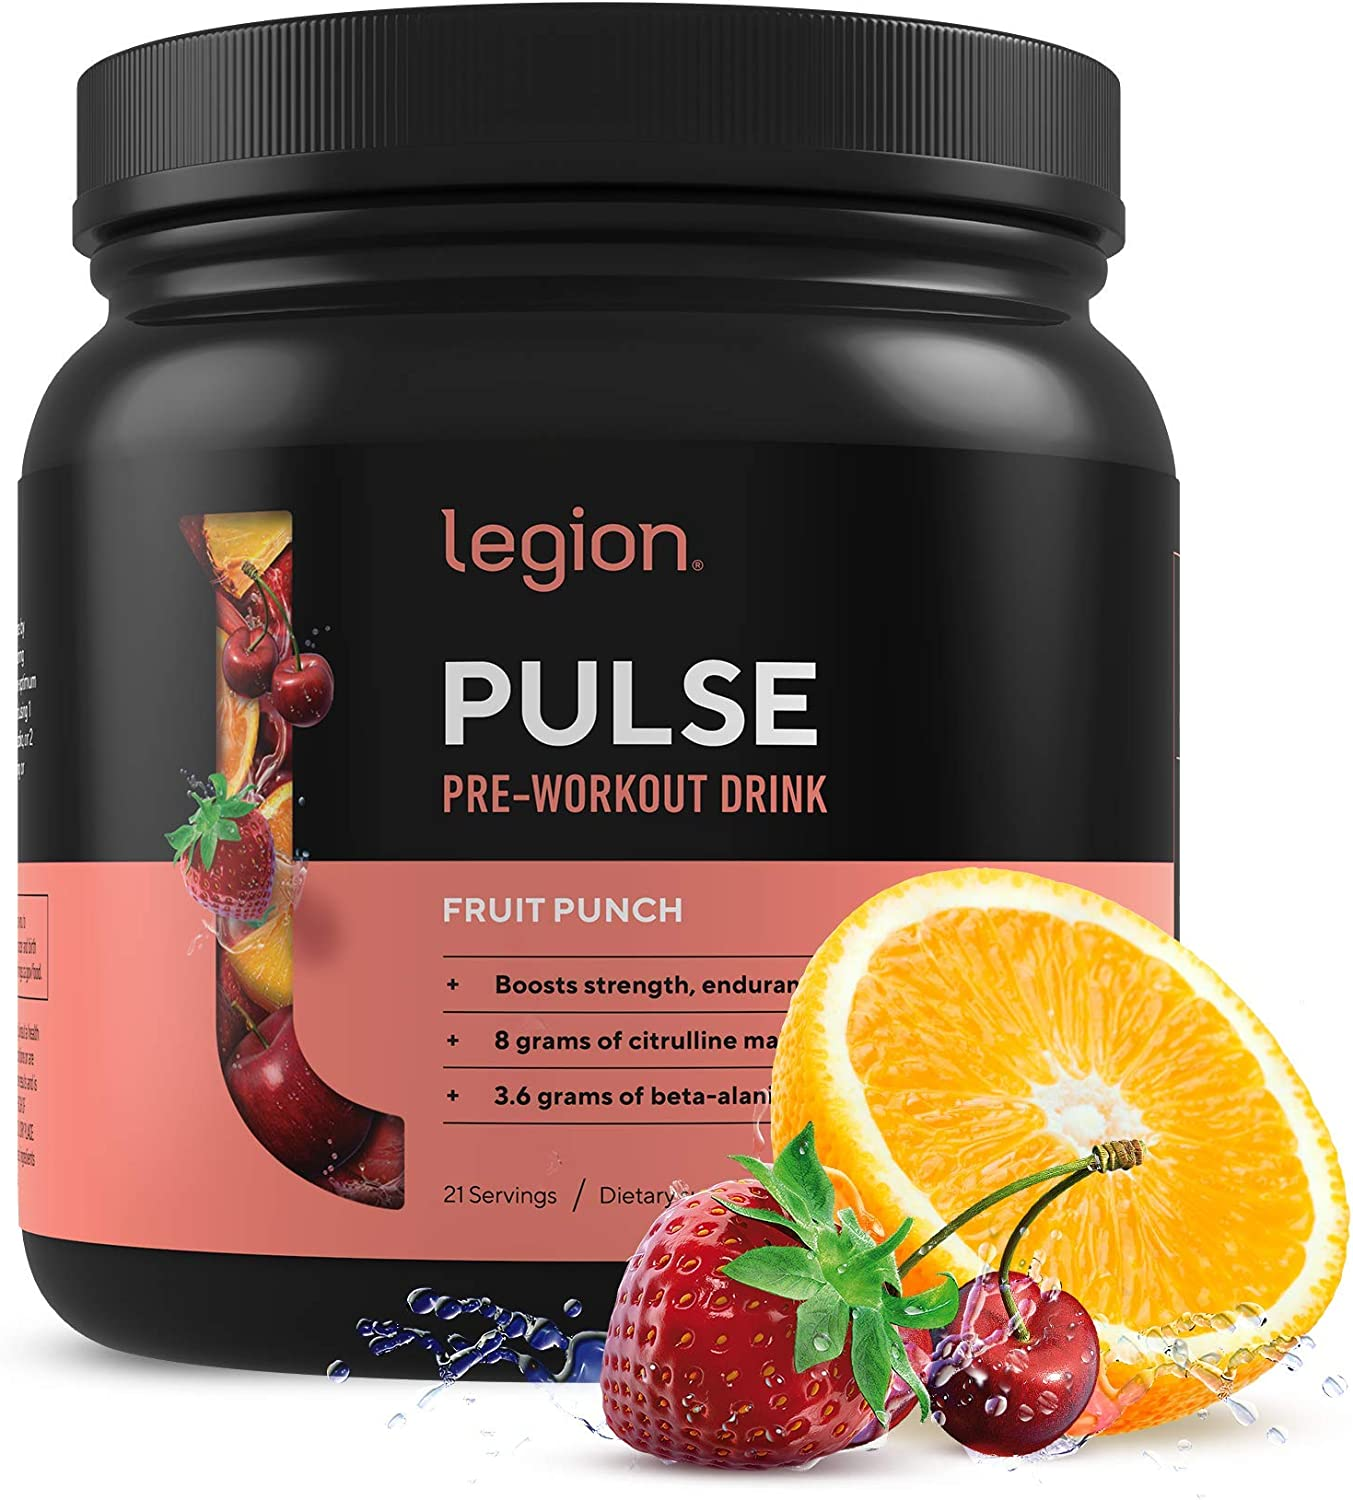 Legion Pulse, Best Natural Pre Workout Supplement for Women and Men – Powerful Nitric Oxide Pre Workout, Effective Pre Workout for Weight Loss. (Fruit Punch): Health & Personal Care